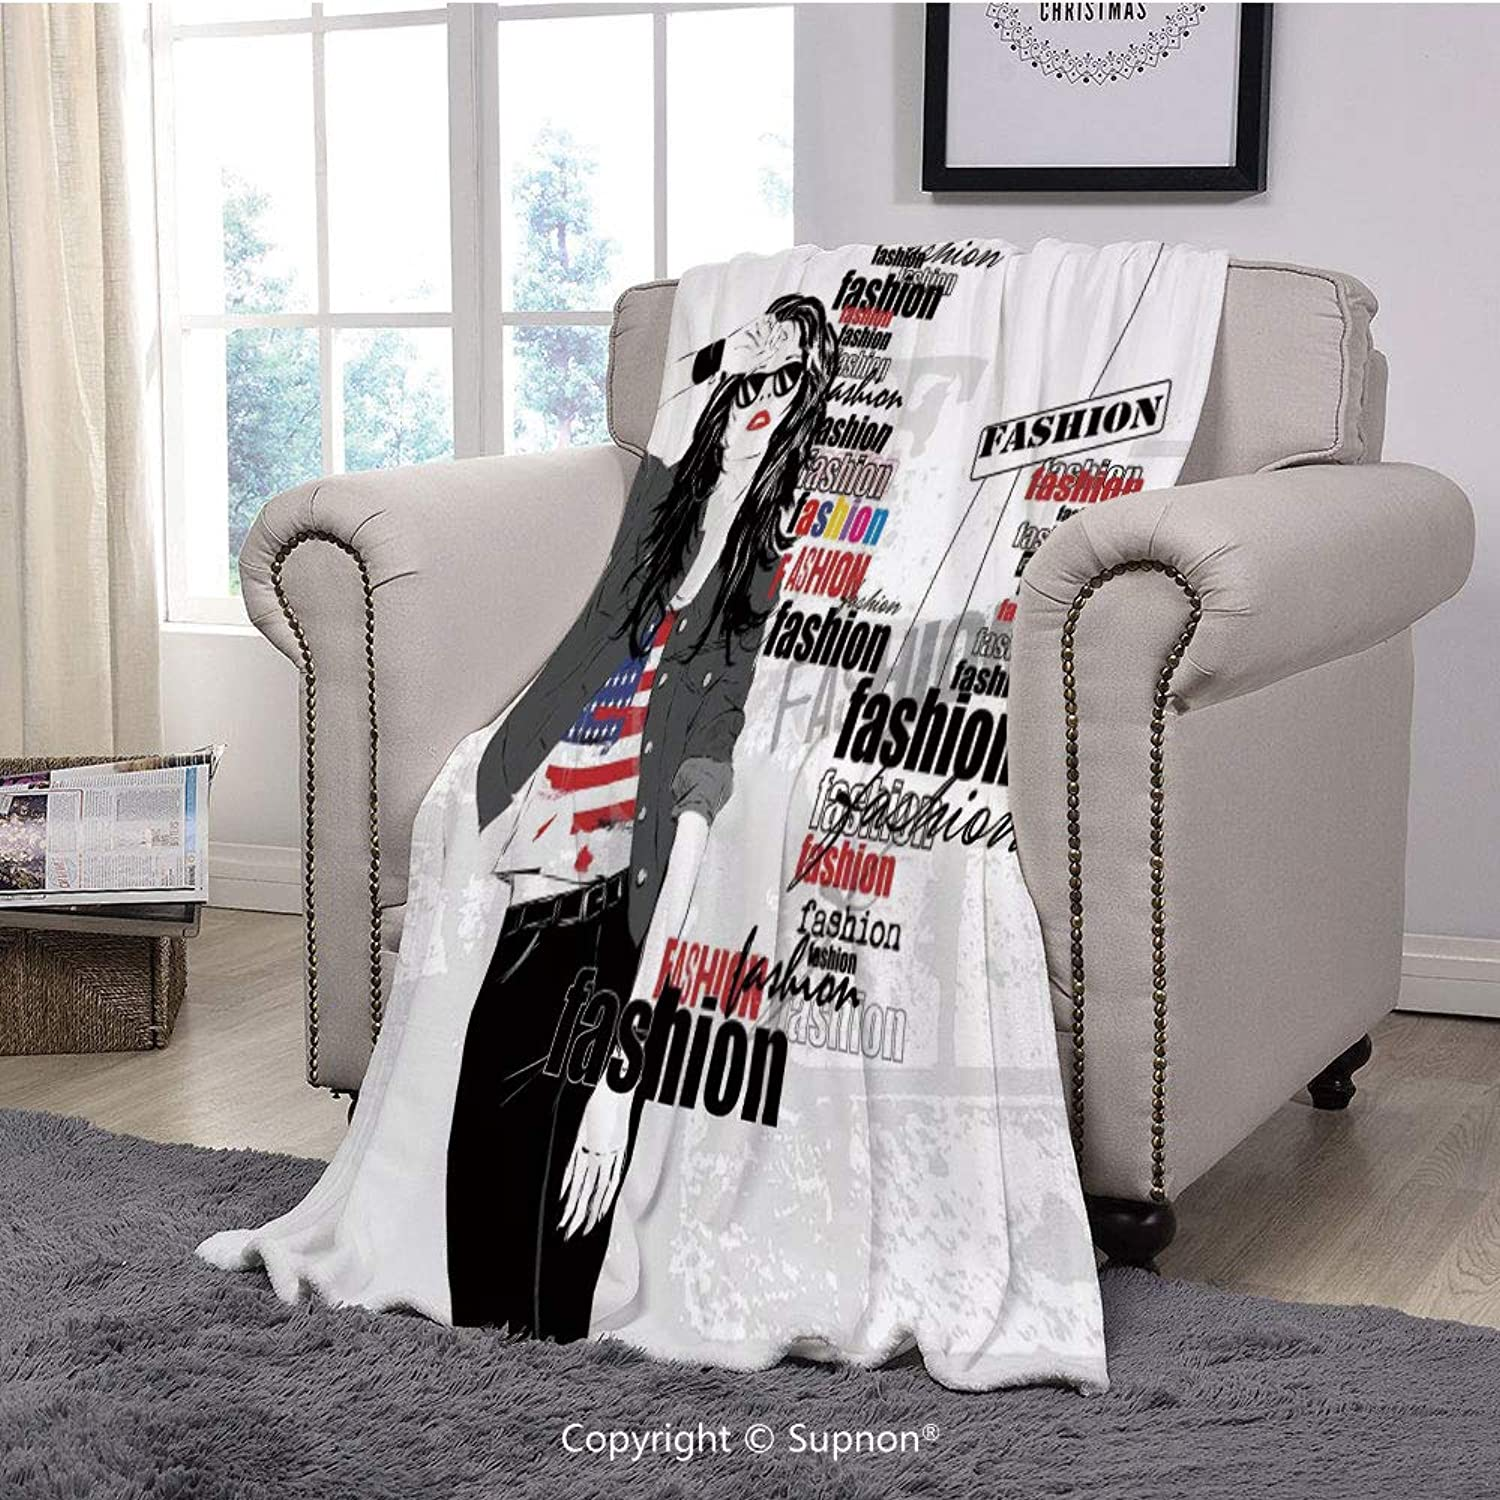 Printing Blanket Coral Plush Super Soft Decorative Throw Blanket,Fashion House Decor,A Modern Girl with USA Flag Tshirt colorful Thema Beauty in Street,Black White(59  x 59 )